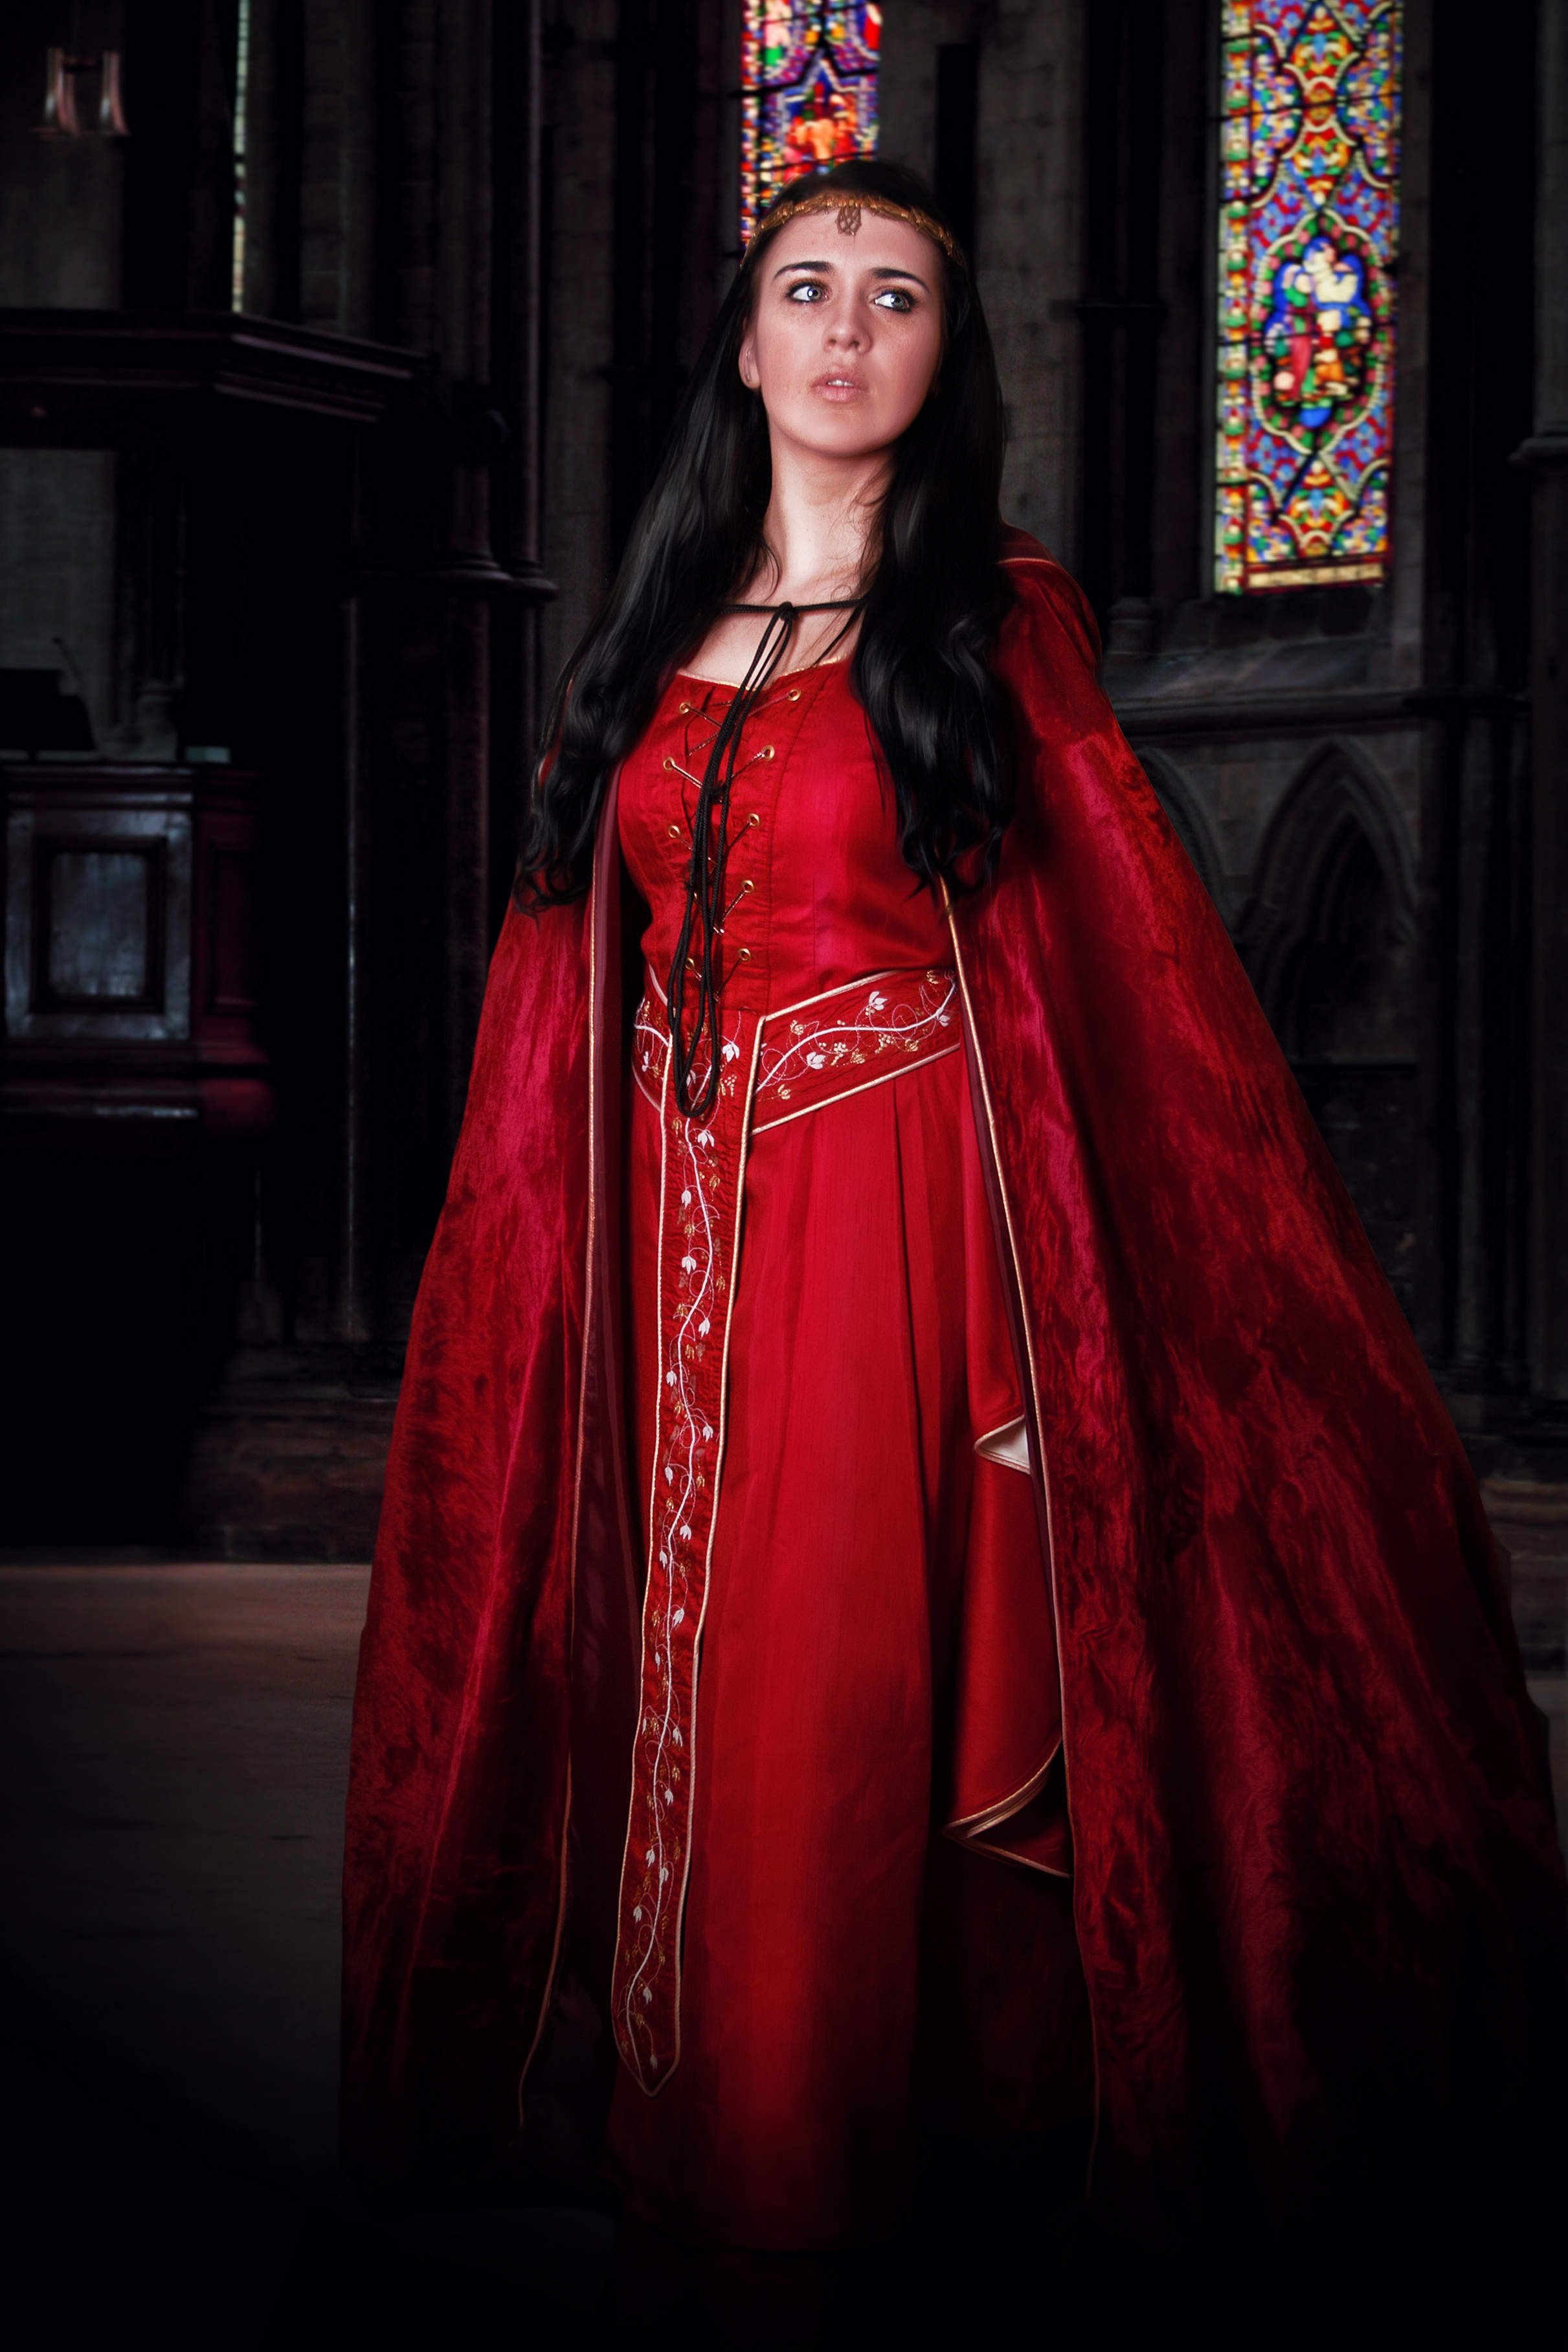 Red medieval gown with batwing sleeves and false lacing on the front bodice